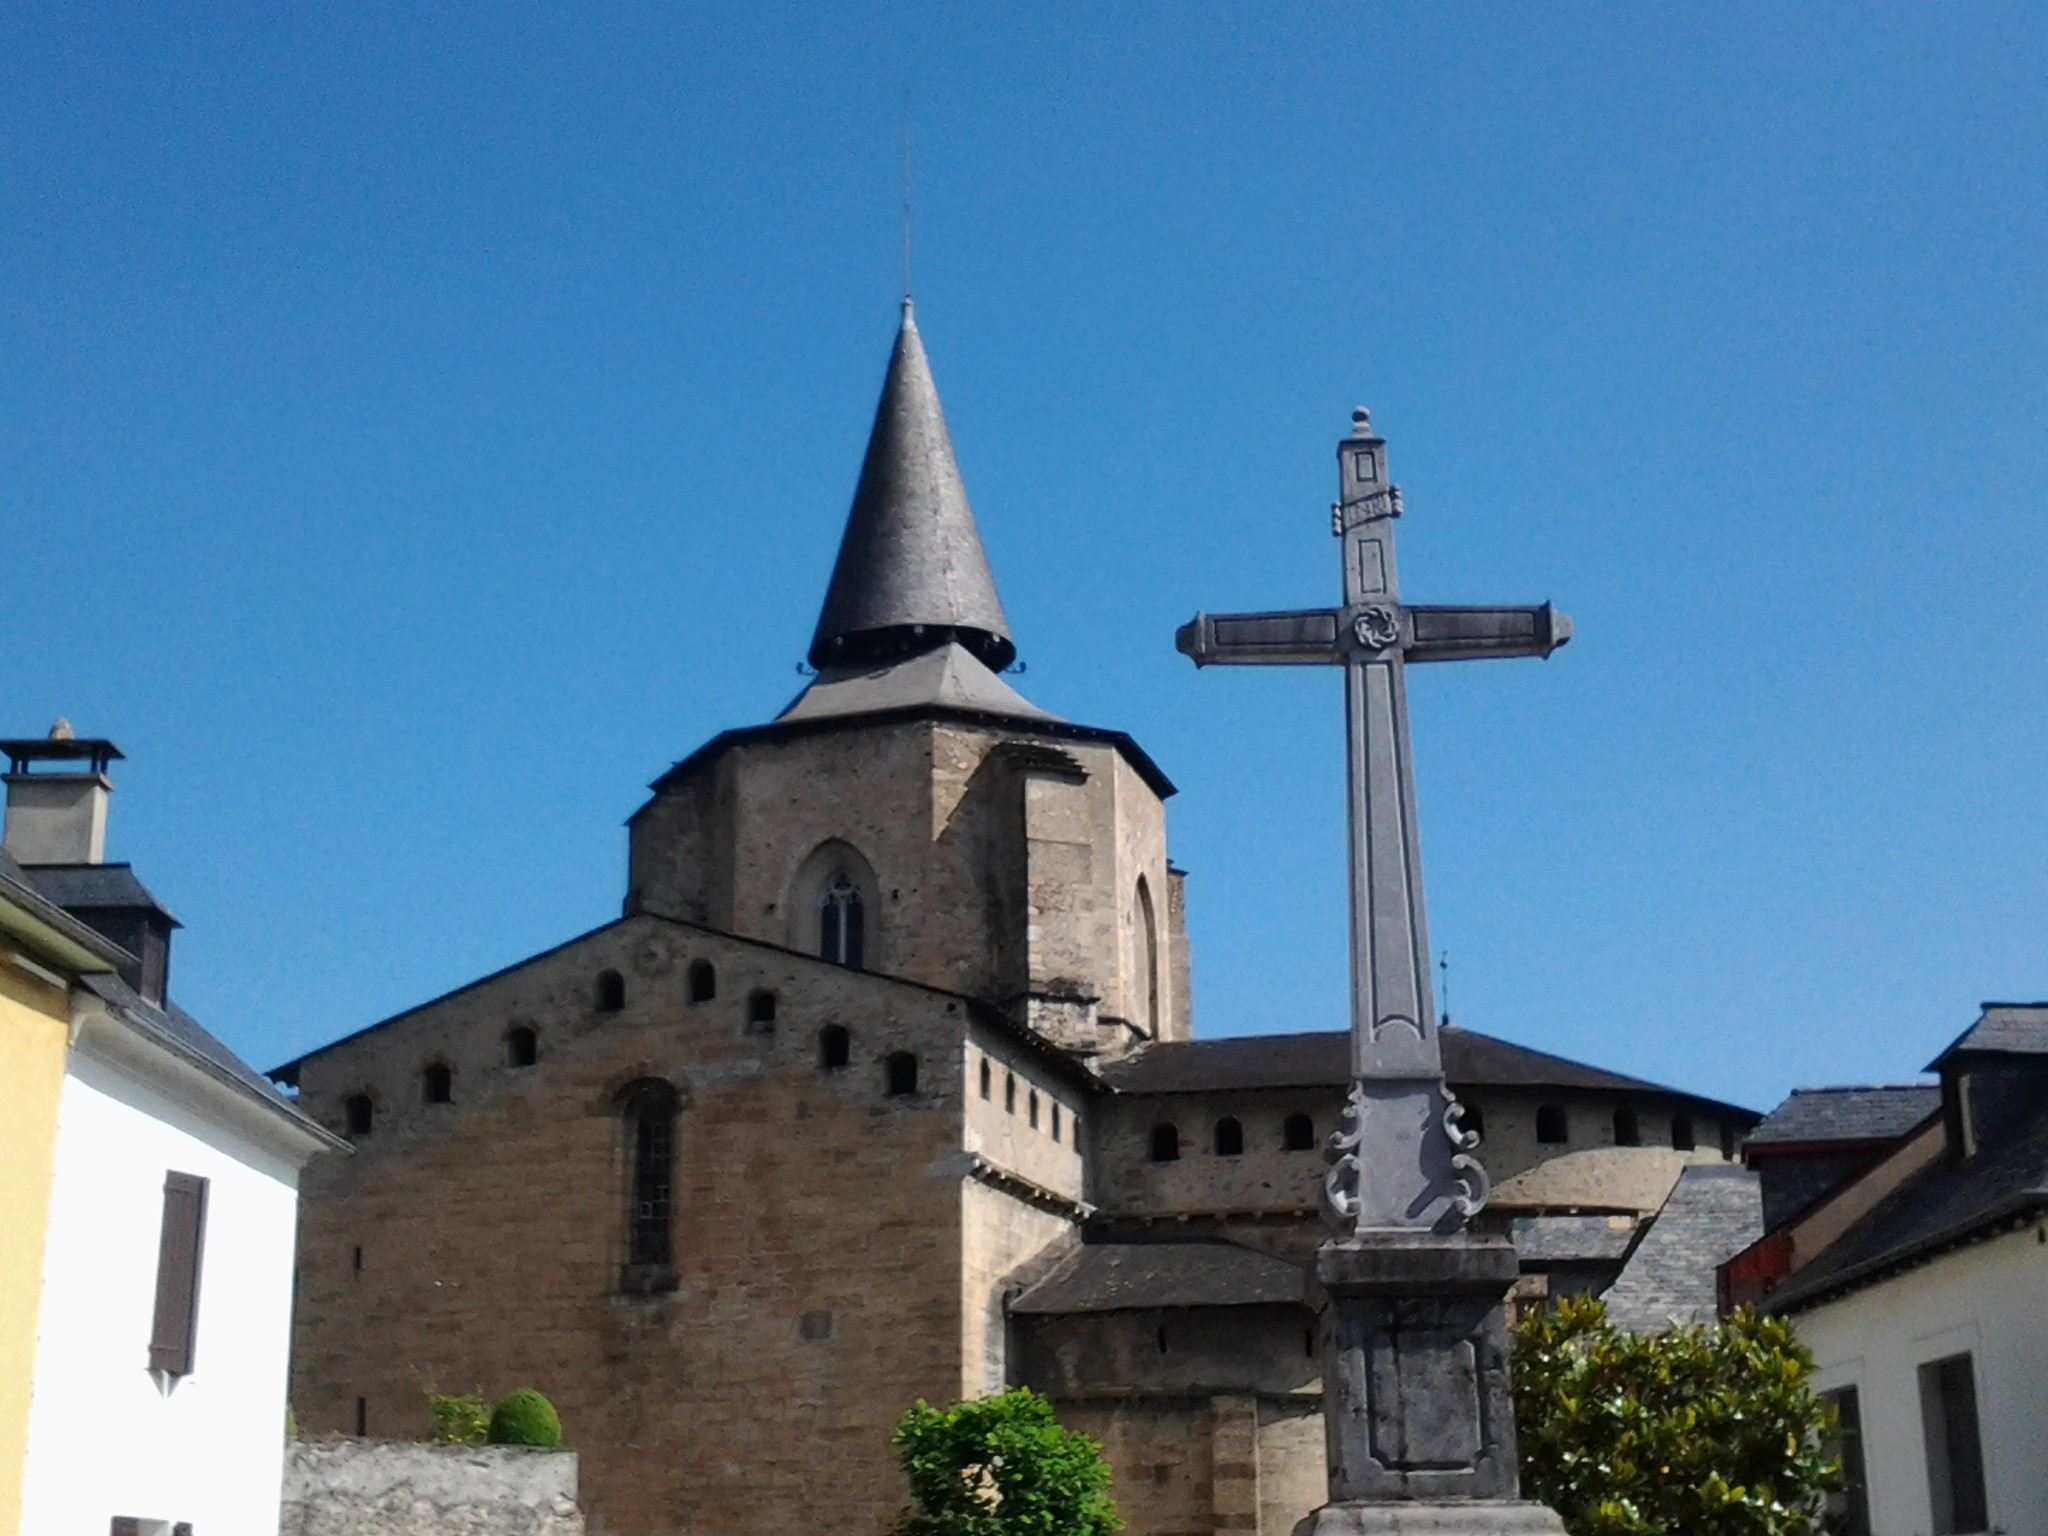 Saint Savin Abbey church